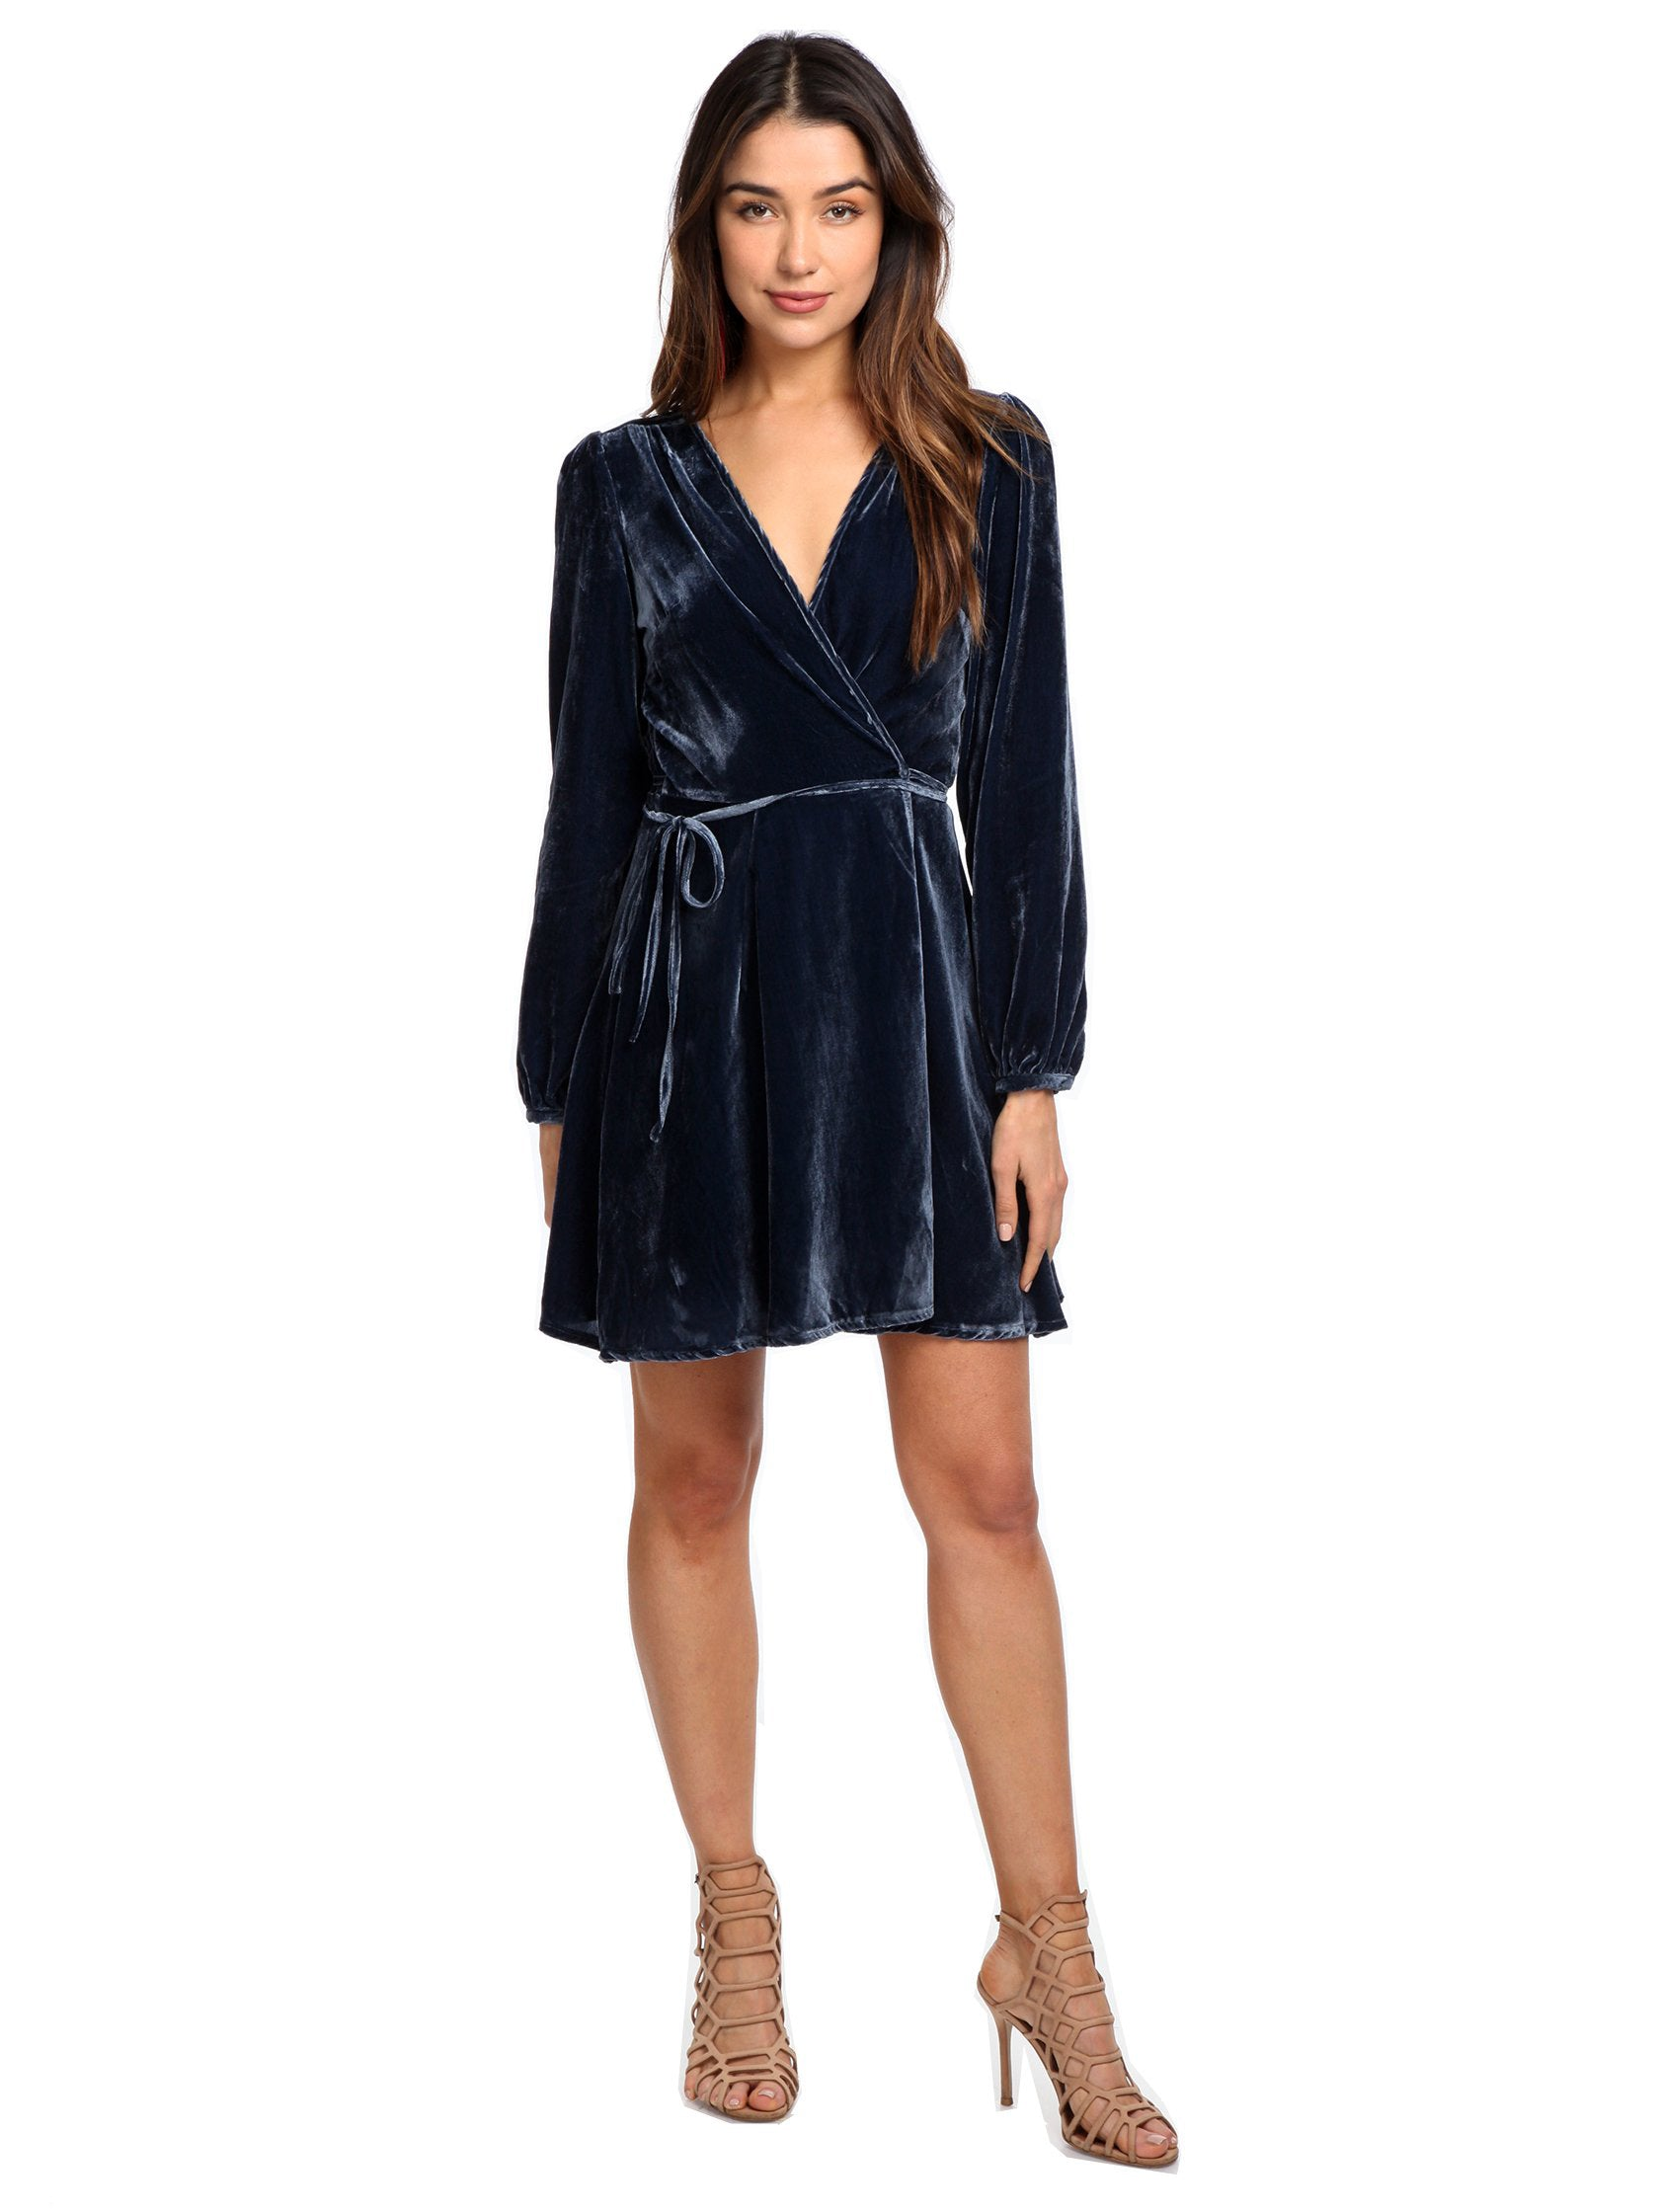 Girl outfit in a dress rental from YUMI KIM called Duchess Velvet Wrap Dress